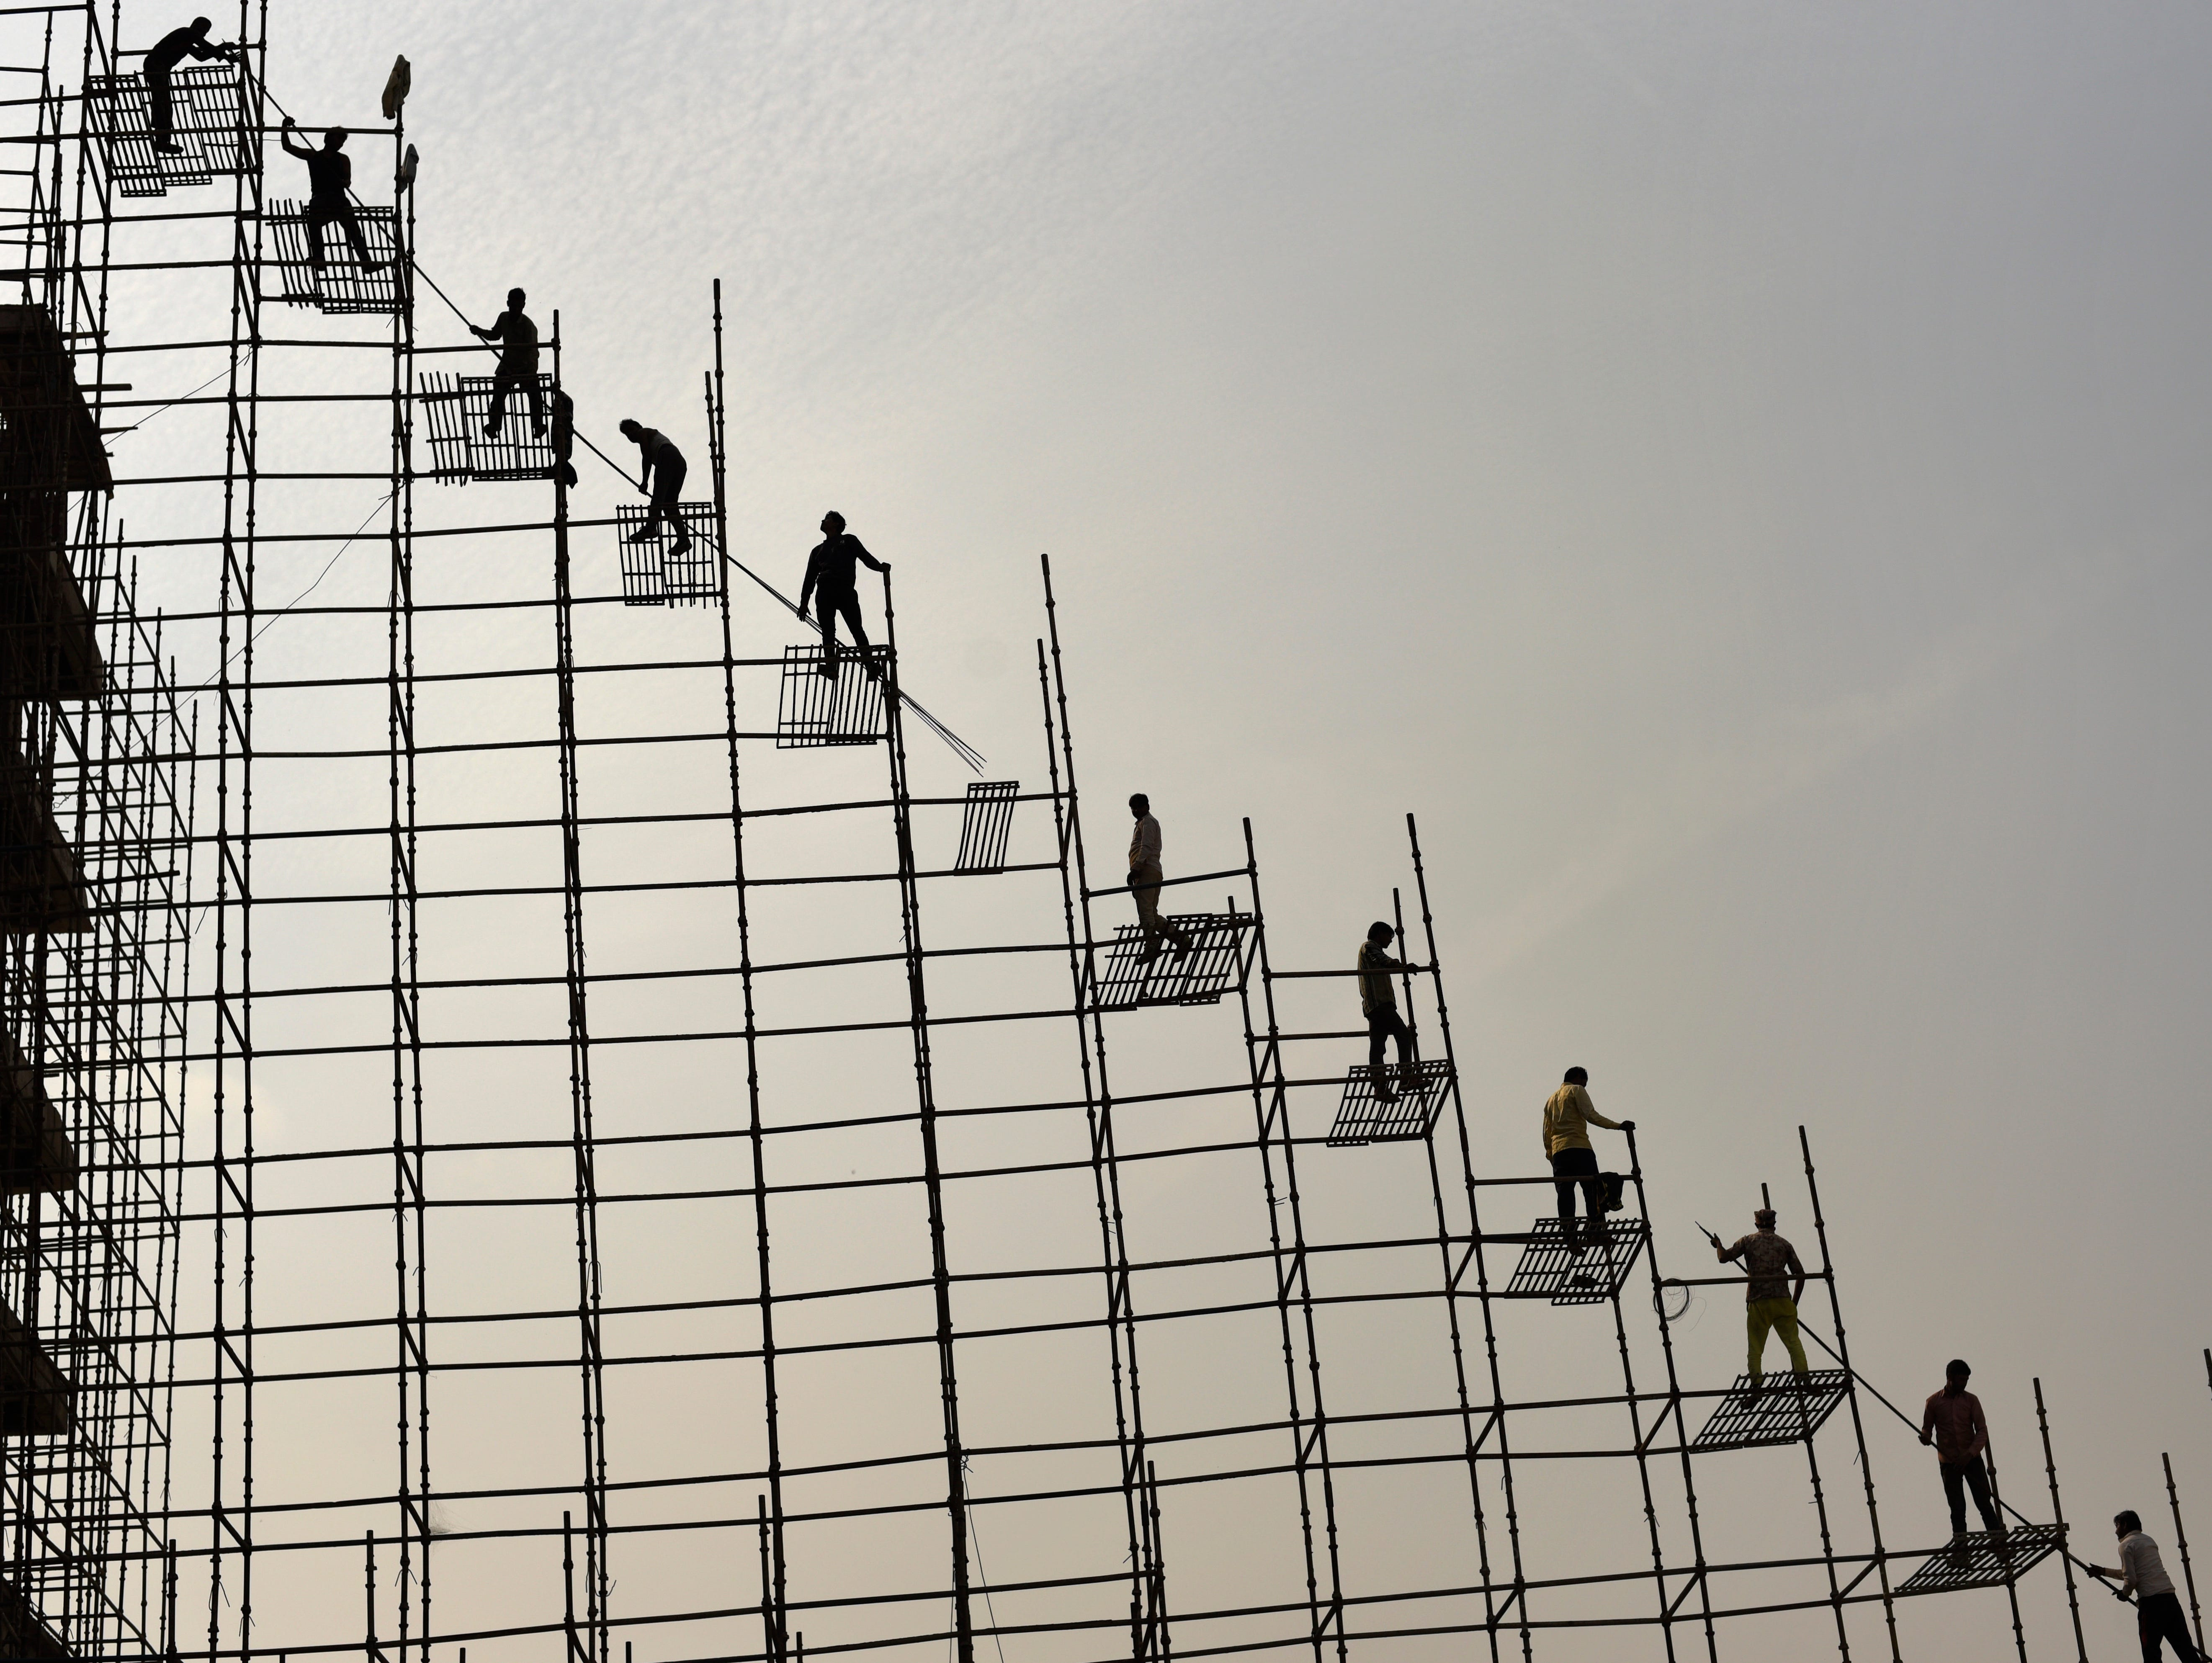 Indian laborers standing on scaffolding shift steel rods from the ground to the top of an under construction hospital building in Greater Noida, near New Delhi, India, Thursday, Nov. 22, 2018. Building work in the capital region has resumed after authorities last week lifted a ban on construction activities they had imposed to combat air pollution.